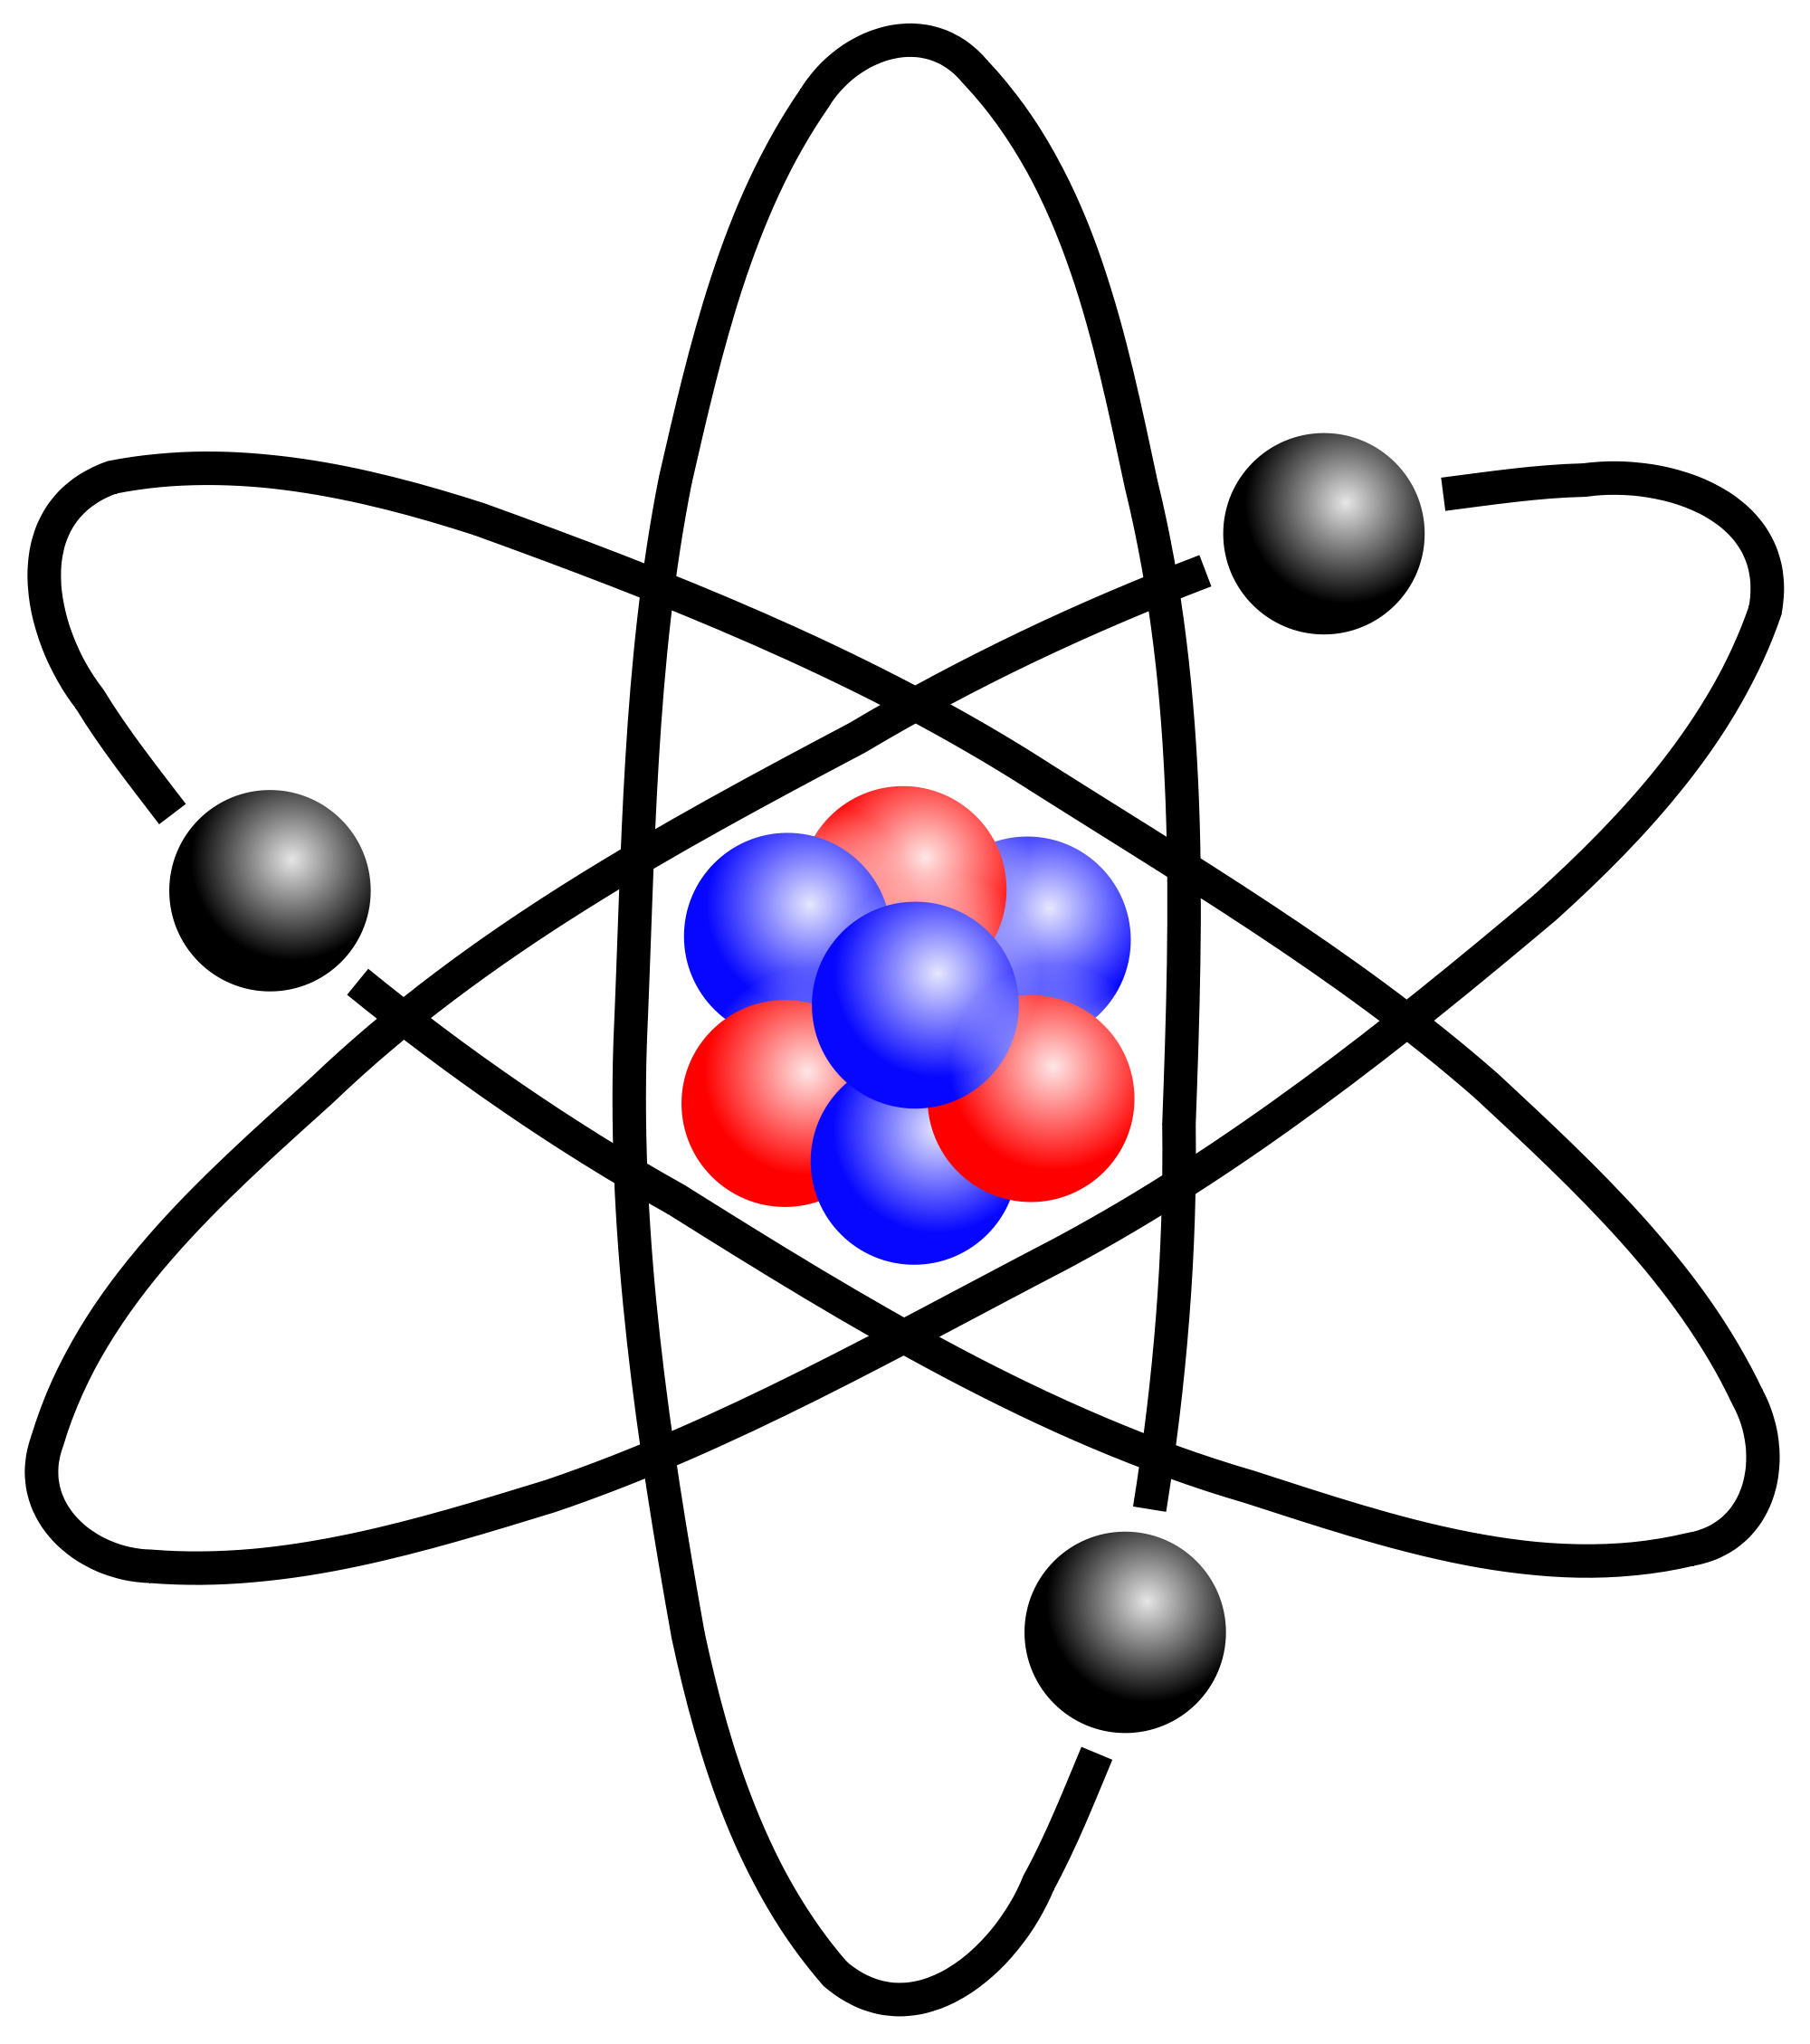 vector library stock physics clipart atomic model #81864156